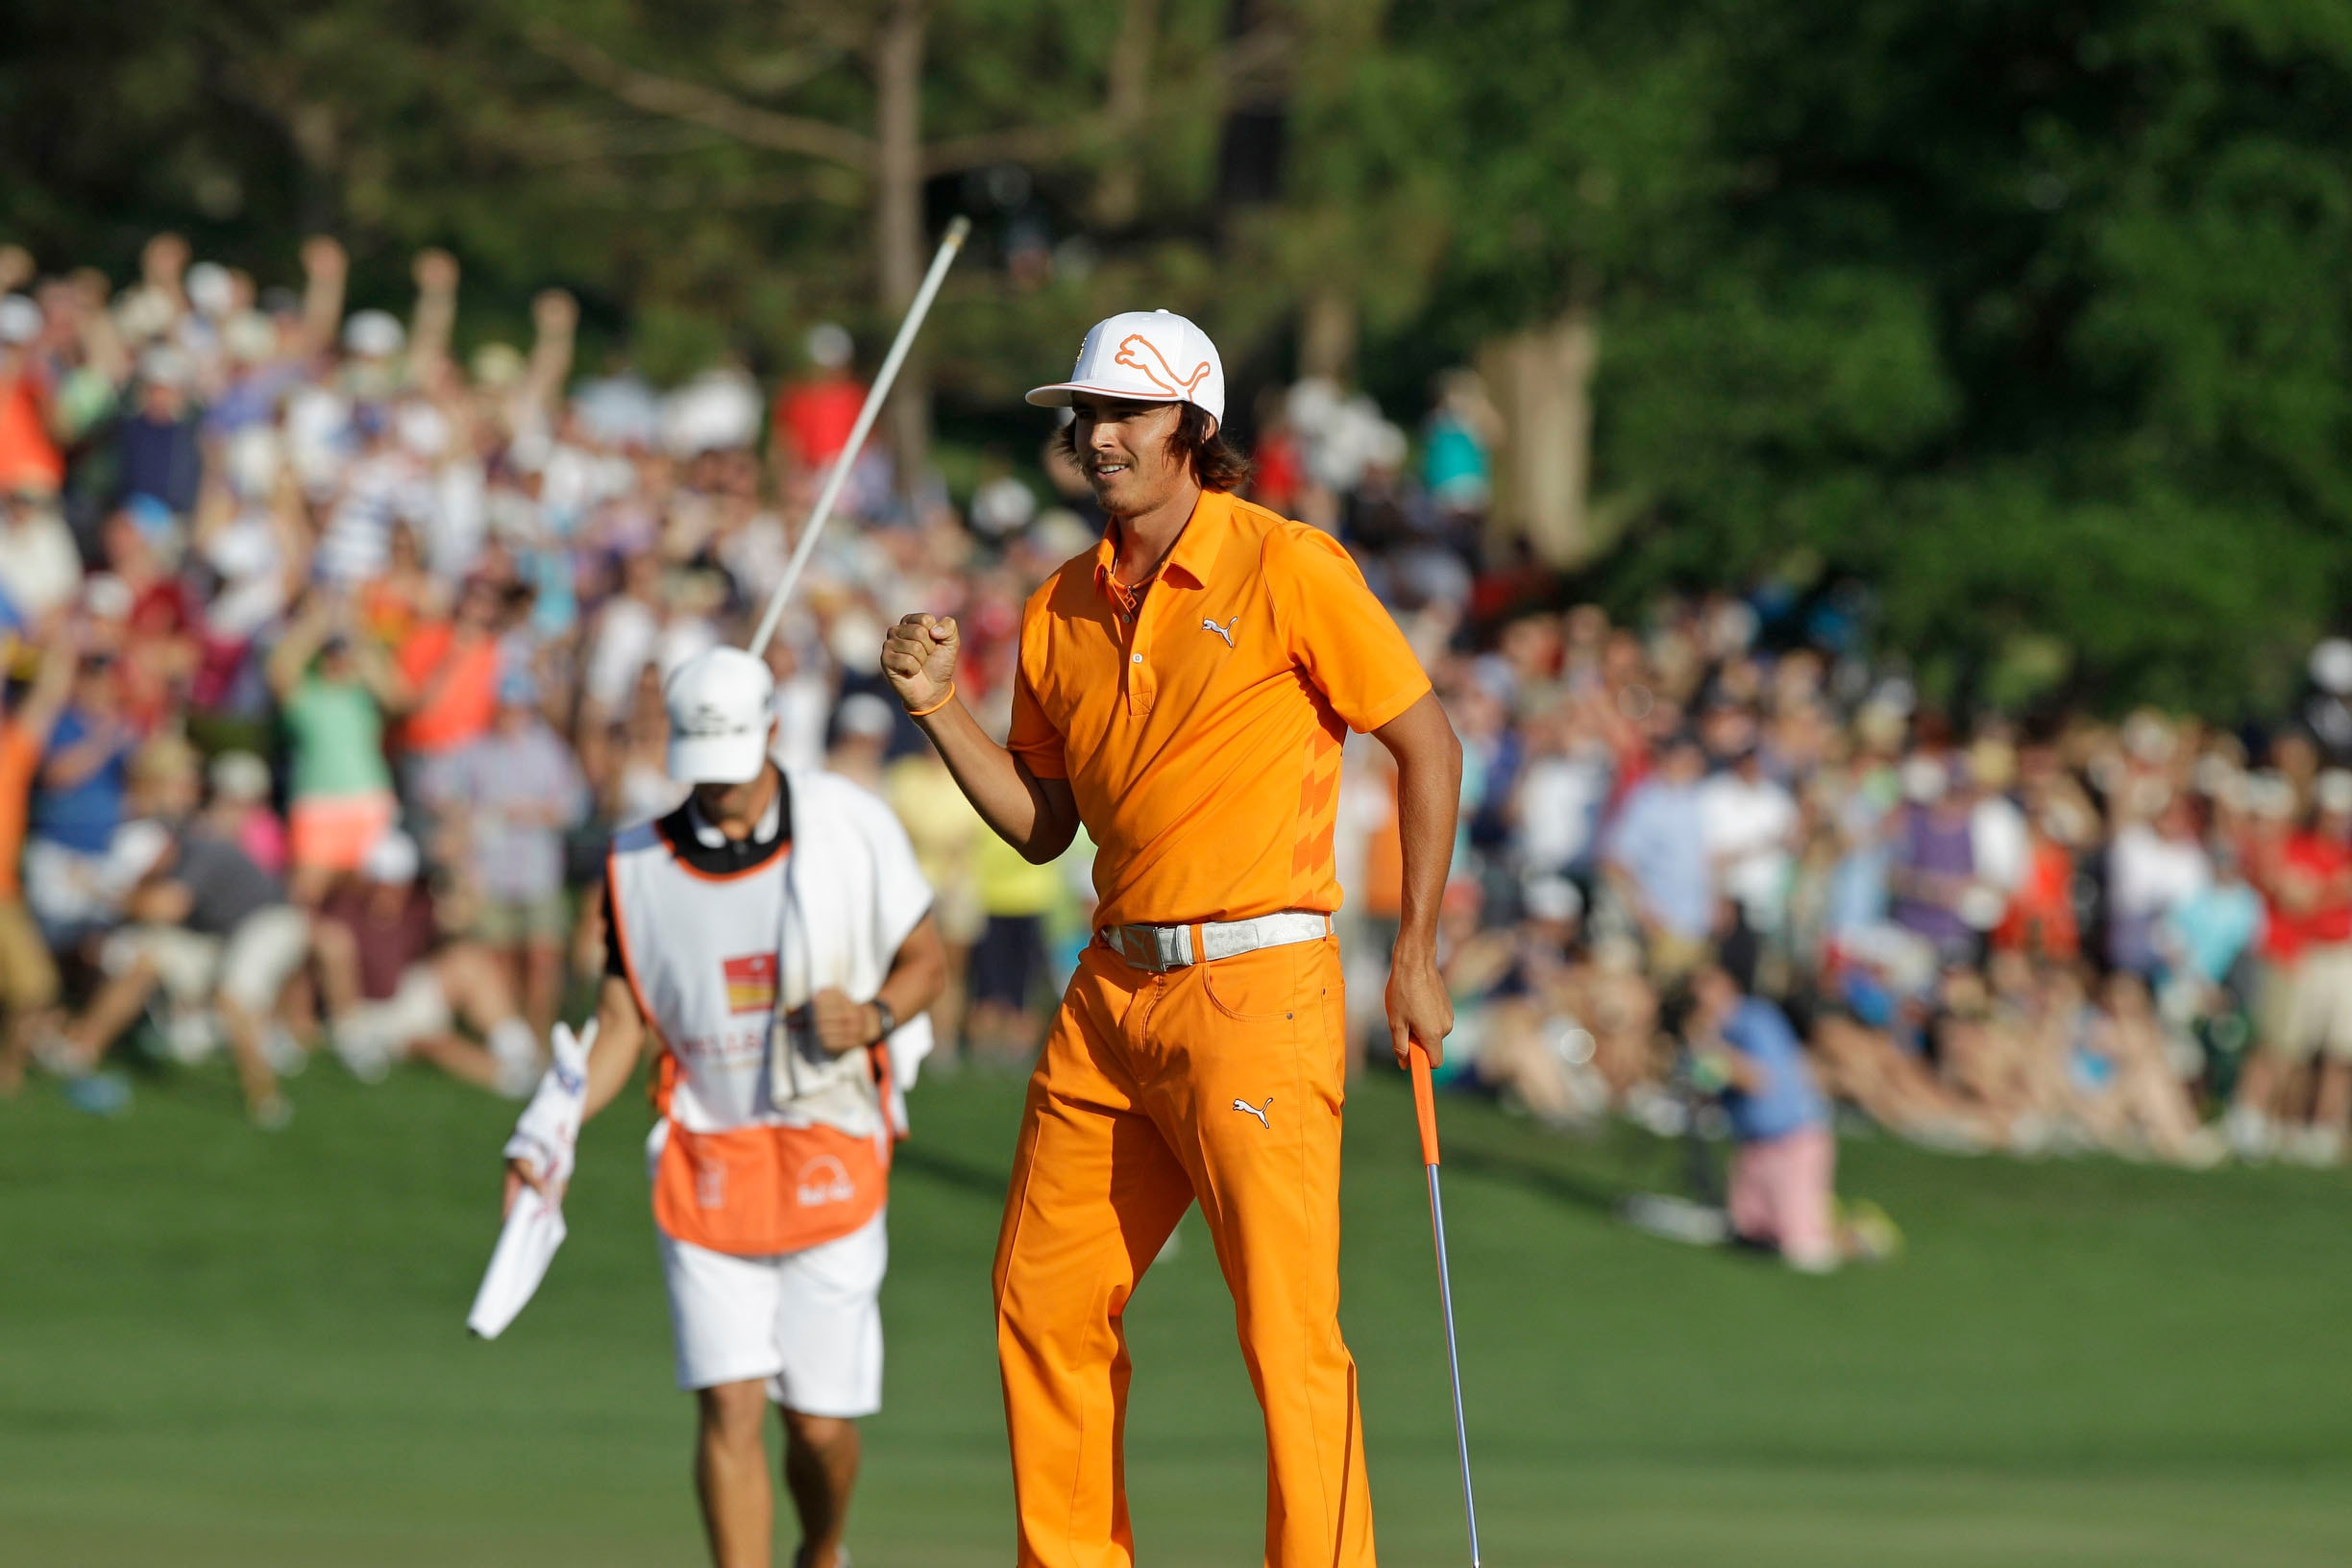 1. 2012: Rickie Fowler's first win